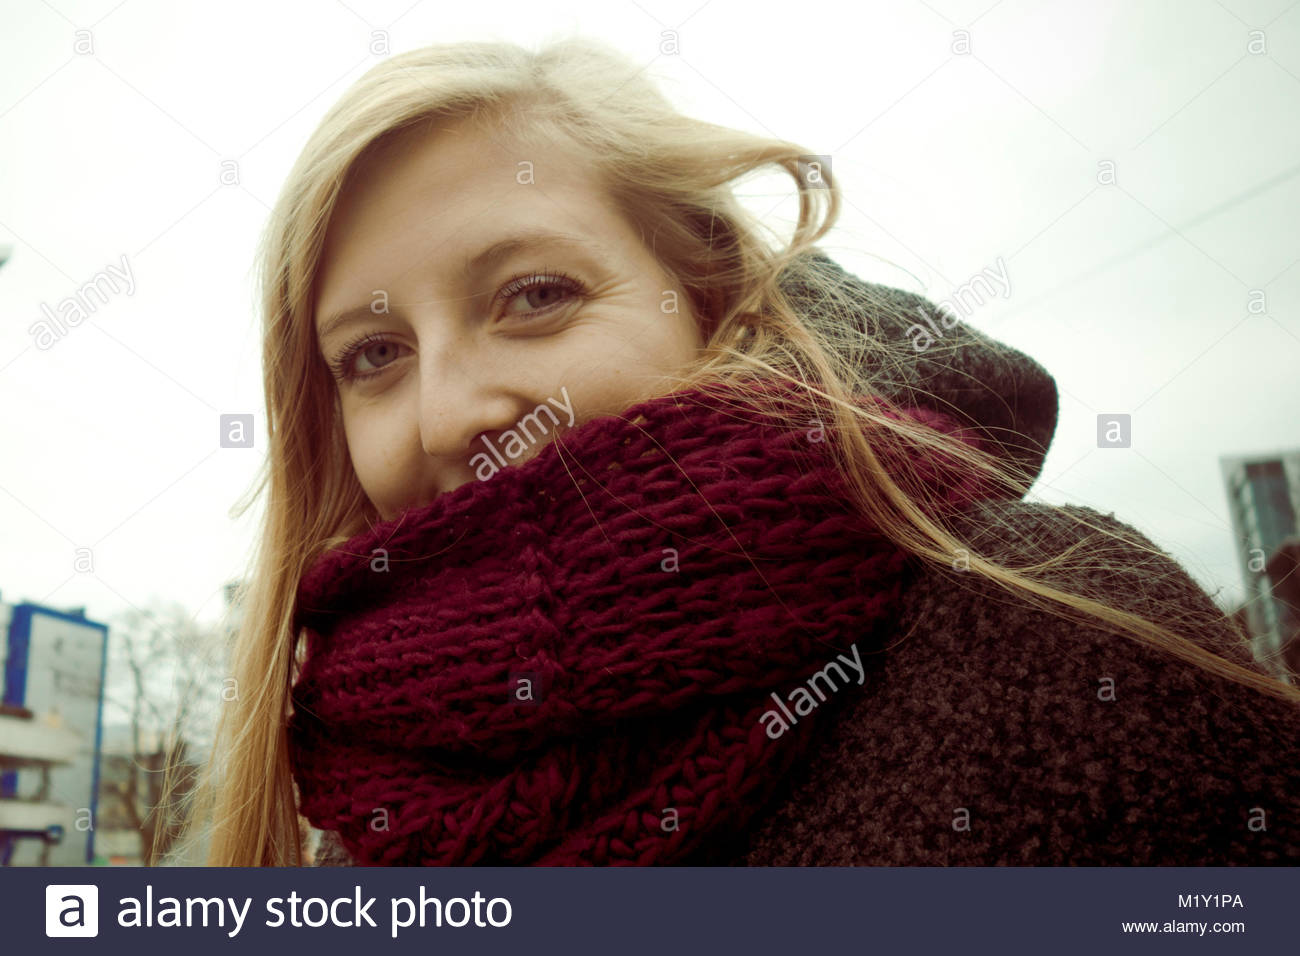 portrait of a blonde Czech young woman with a scarf, in her 20's - Stock Image